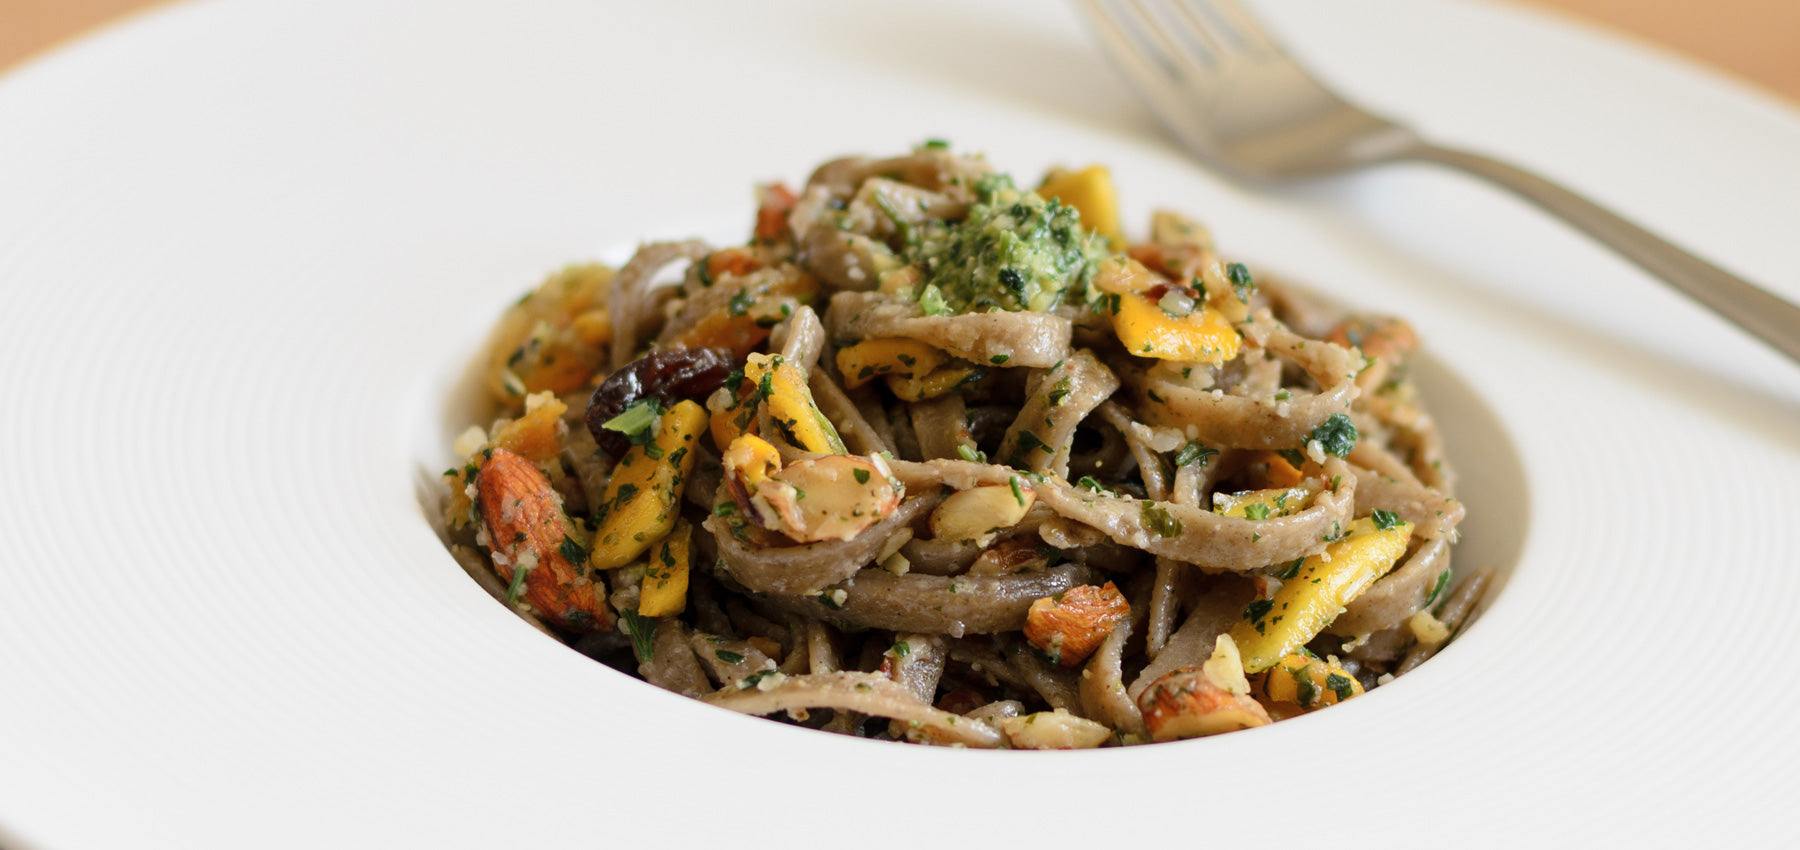 Pappardelle's Bhakti Chai Tea Linguine Tossed In Homemade Lemongrass Pesto with Dried Fruits Nuts